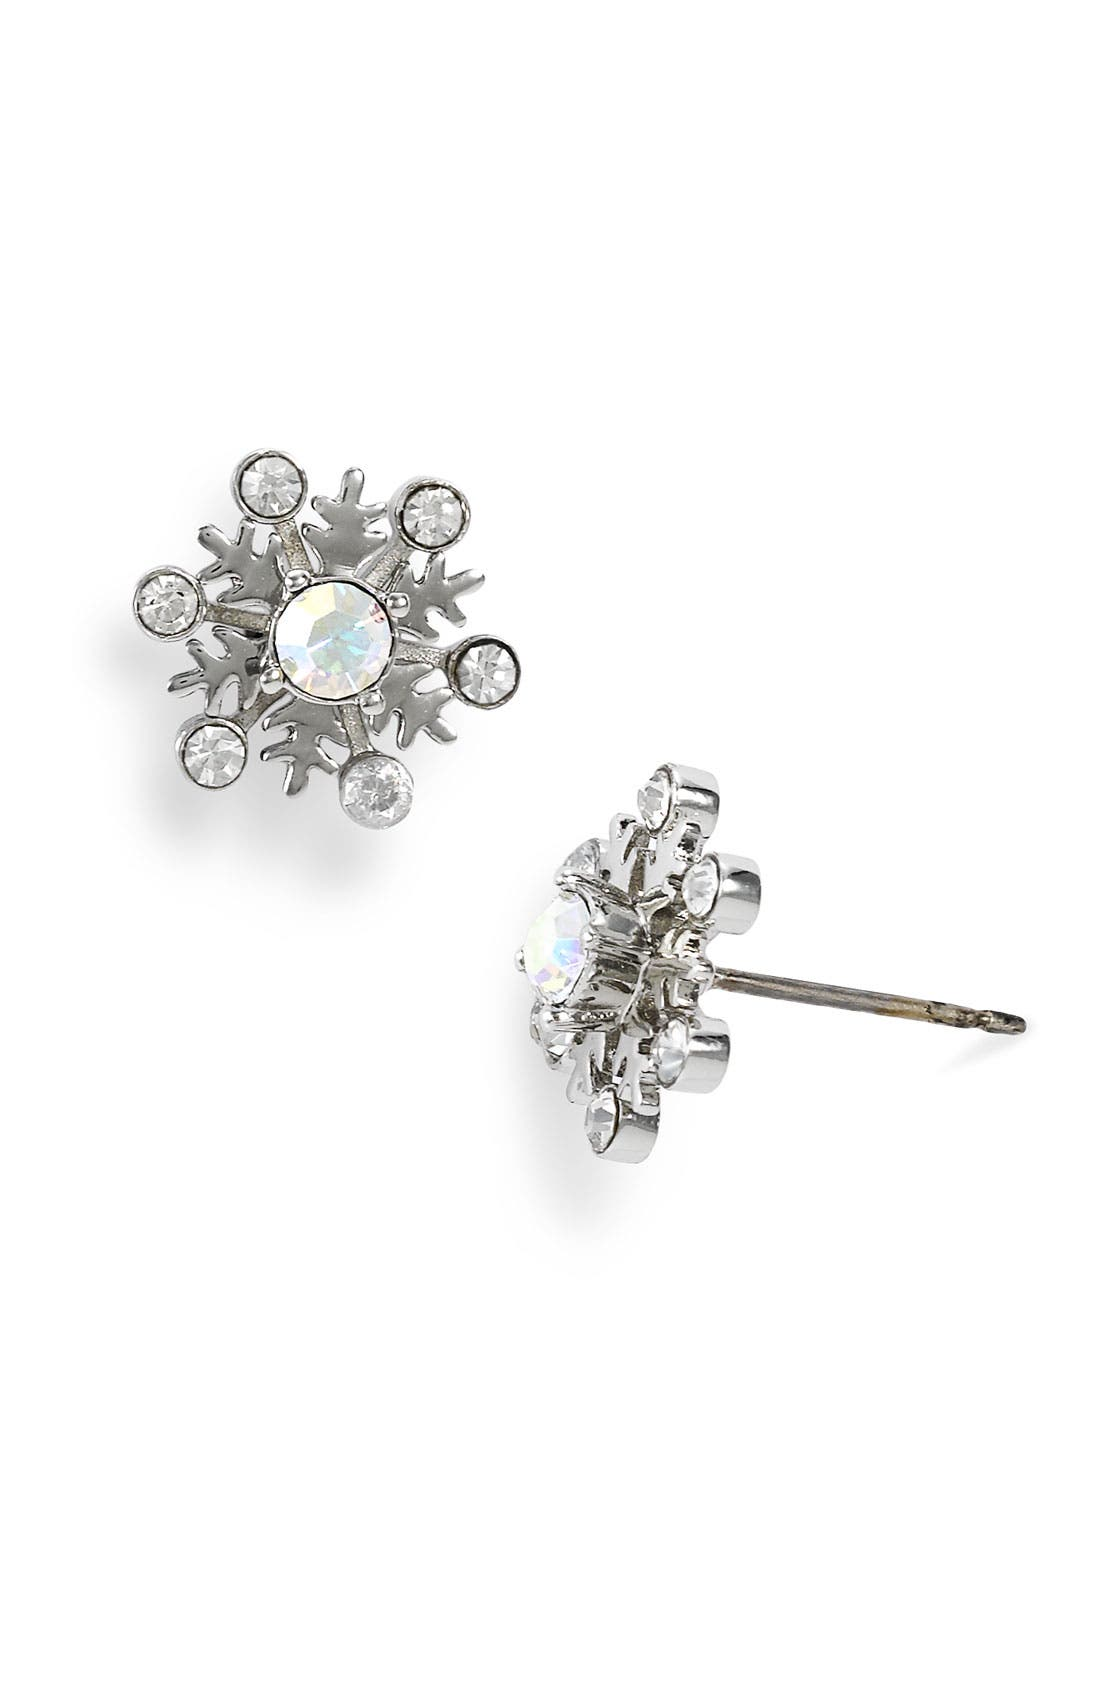 Main Image - Juicy Couture 'Bundled in Couture' Snowflake Stud Earrings (Limited Edition)